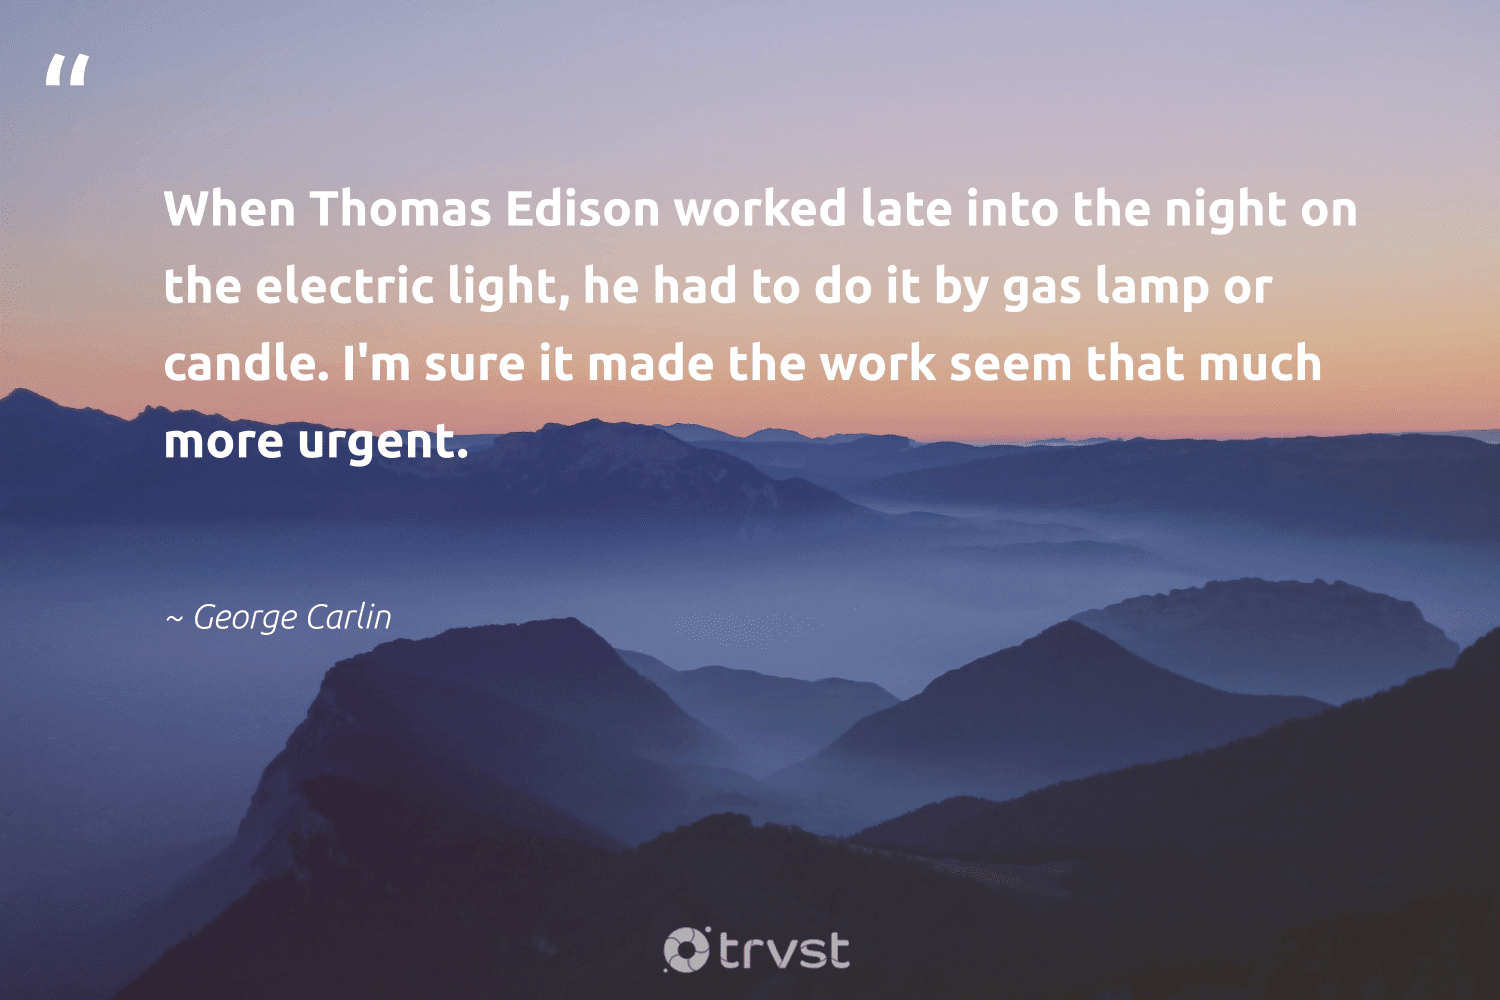 """""""When Thomas Edison worked late into the night on the electric light, he had to do it by gas lamp or candle. I'm sure it made the work seem that much more urgent.""""  - George Carlin #trvst #quotes #gas #oilspill #nevergiveup #environmental #socialimpact #fossilfuels #begreat #cop21 #gogreen #oilslick"""